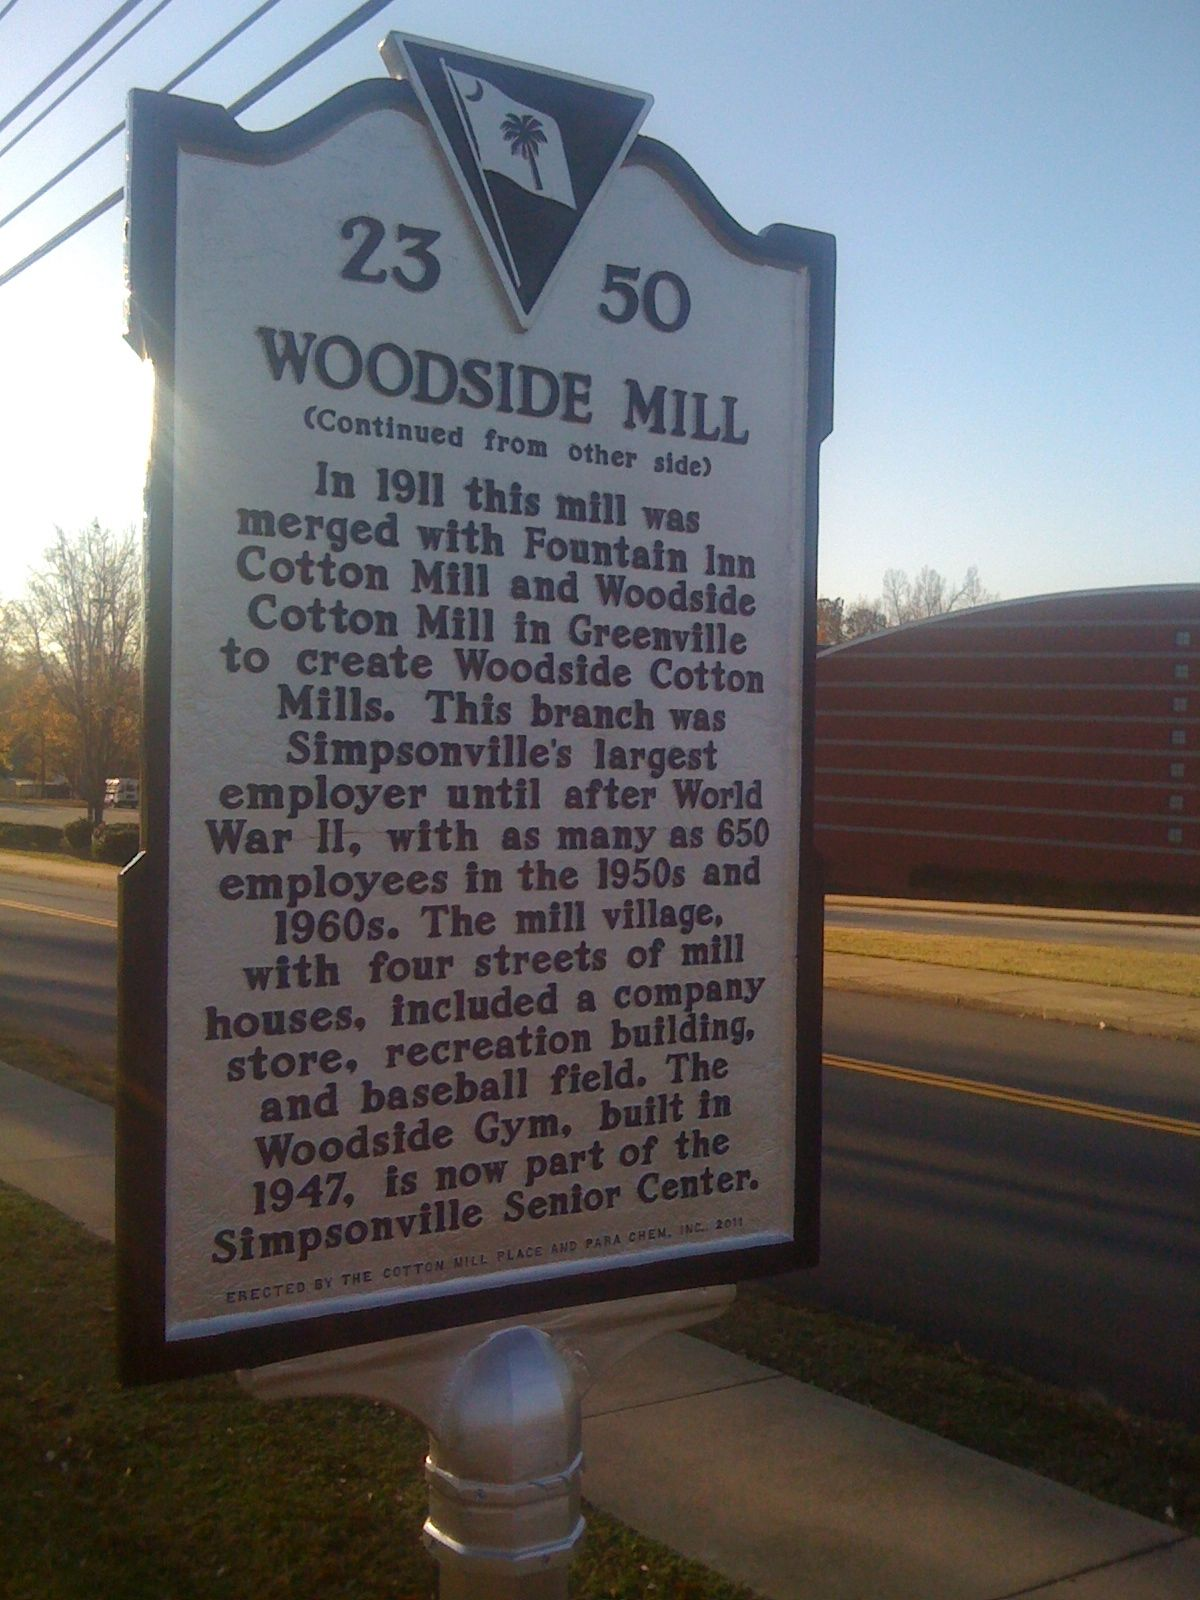 Historic Marker describes the Mill's impact on the city of